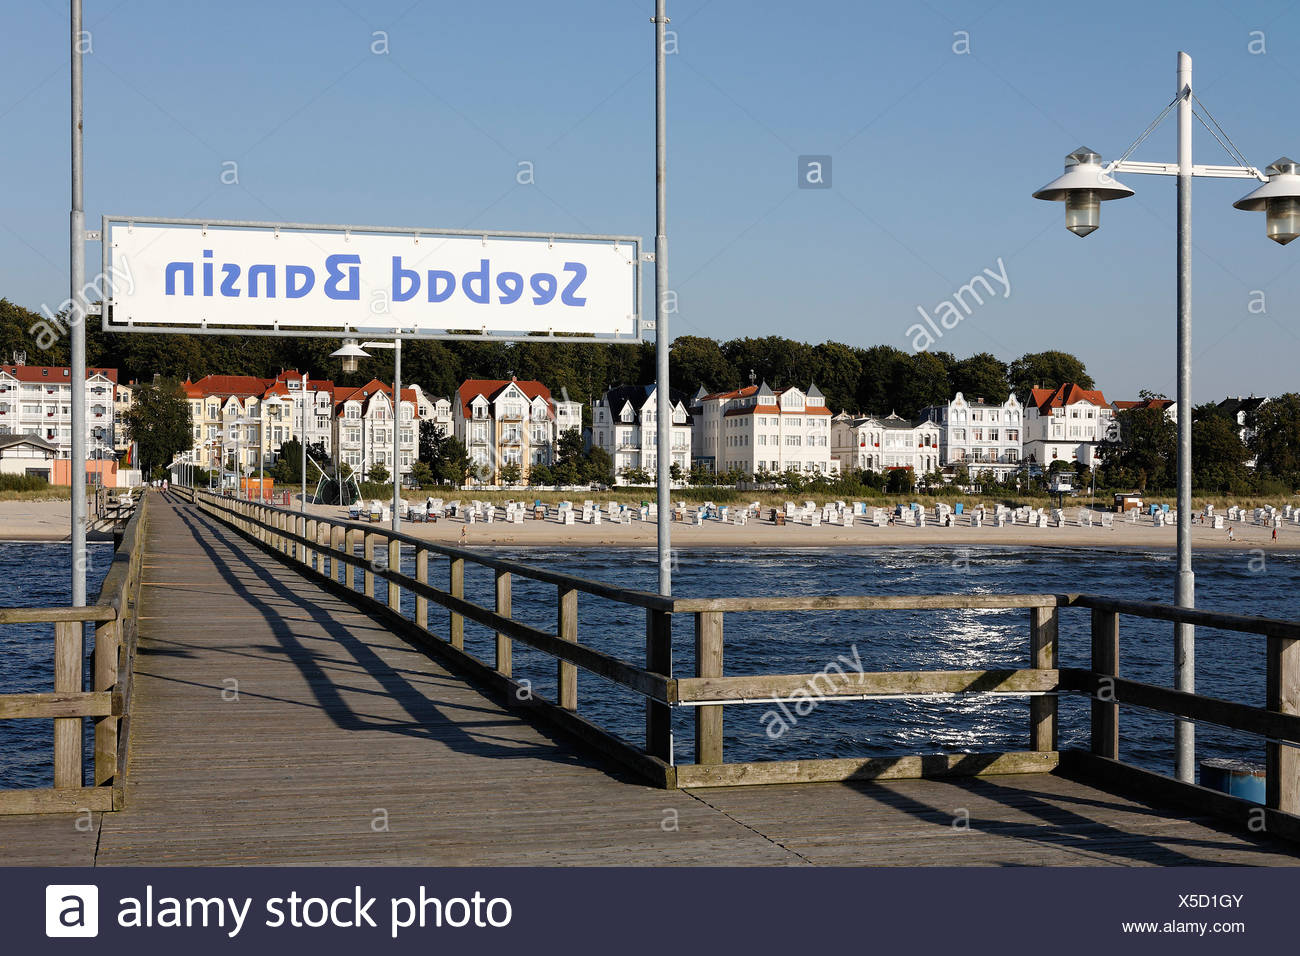 Bansin seaside resort, view from pier, Usedom Island, Baltic Sea, Mecklenburg-Western Pomerania, Germany, Europe Stock Photo